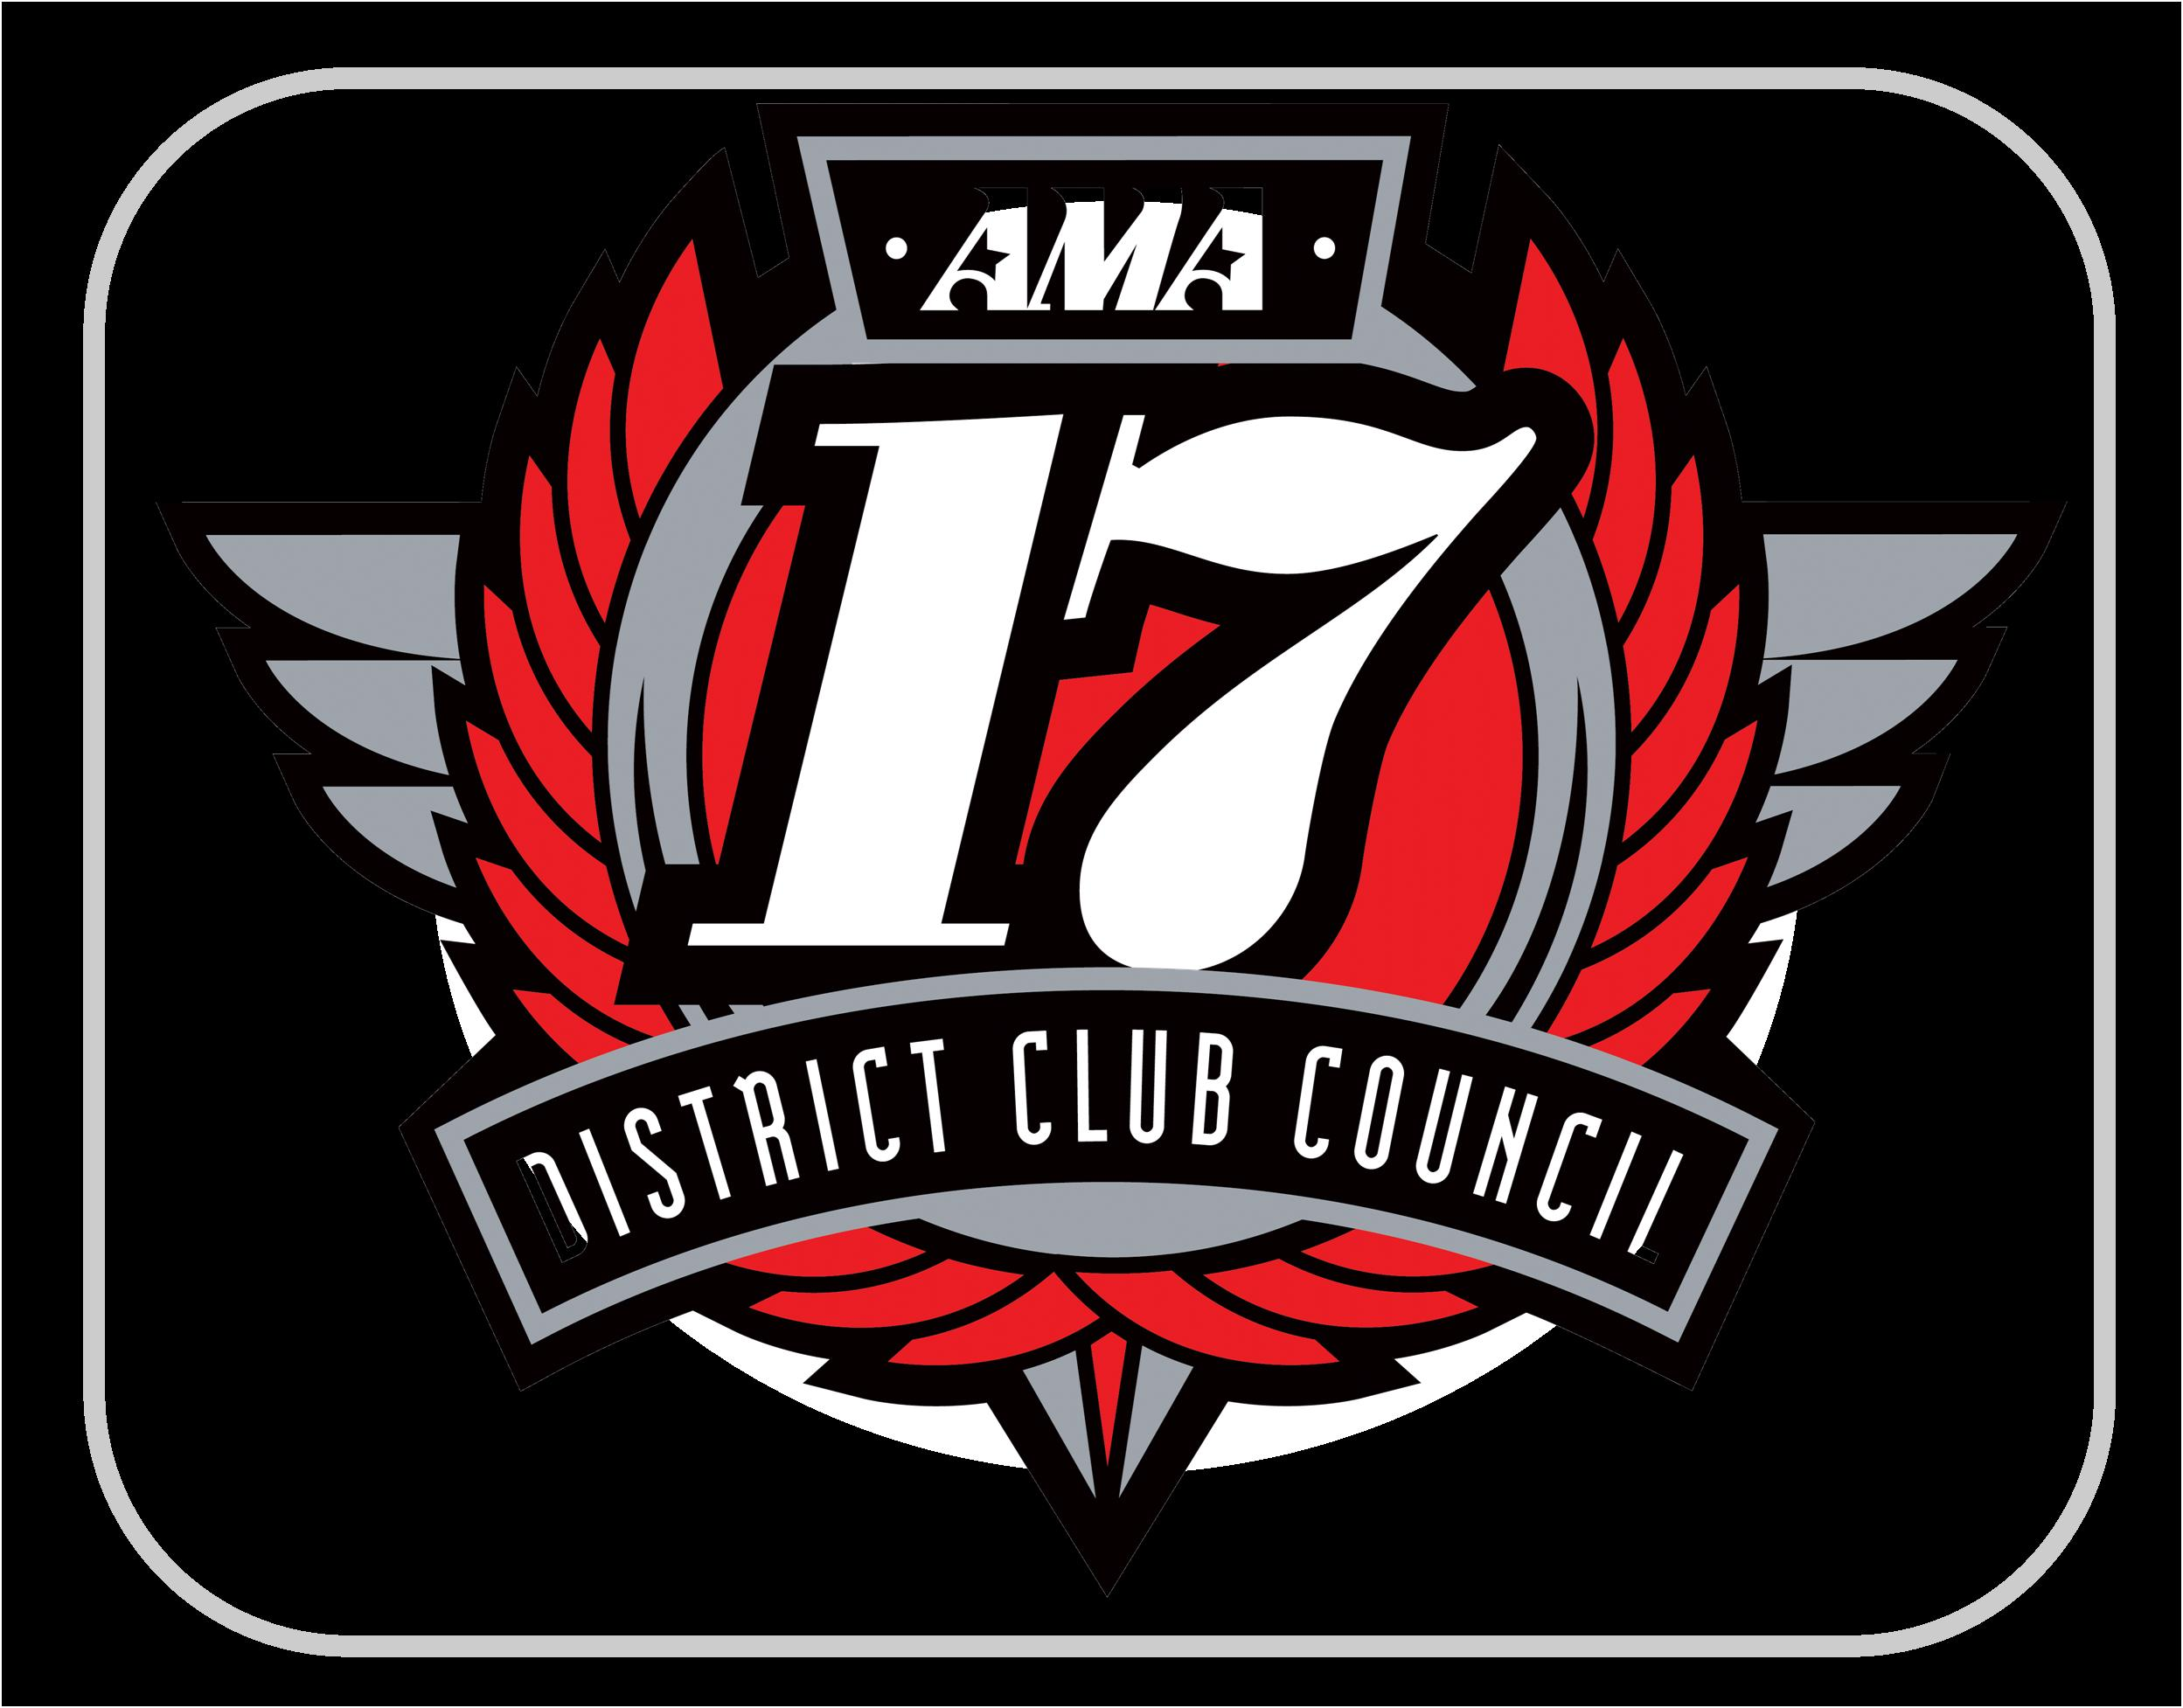 welcome to ama district